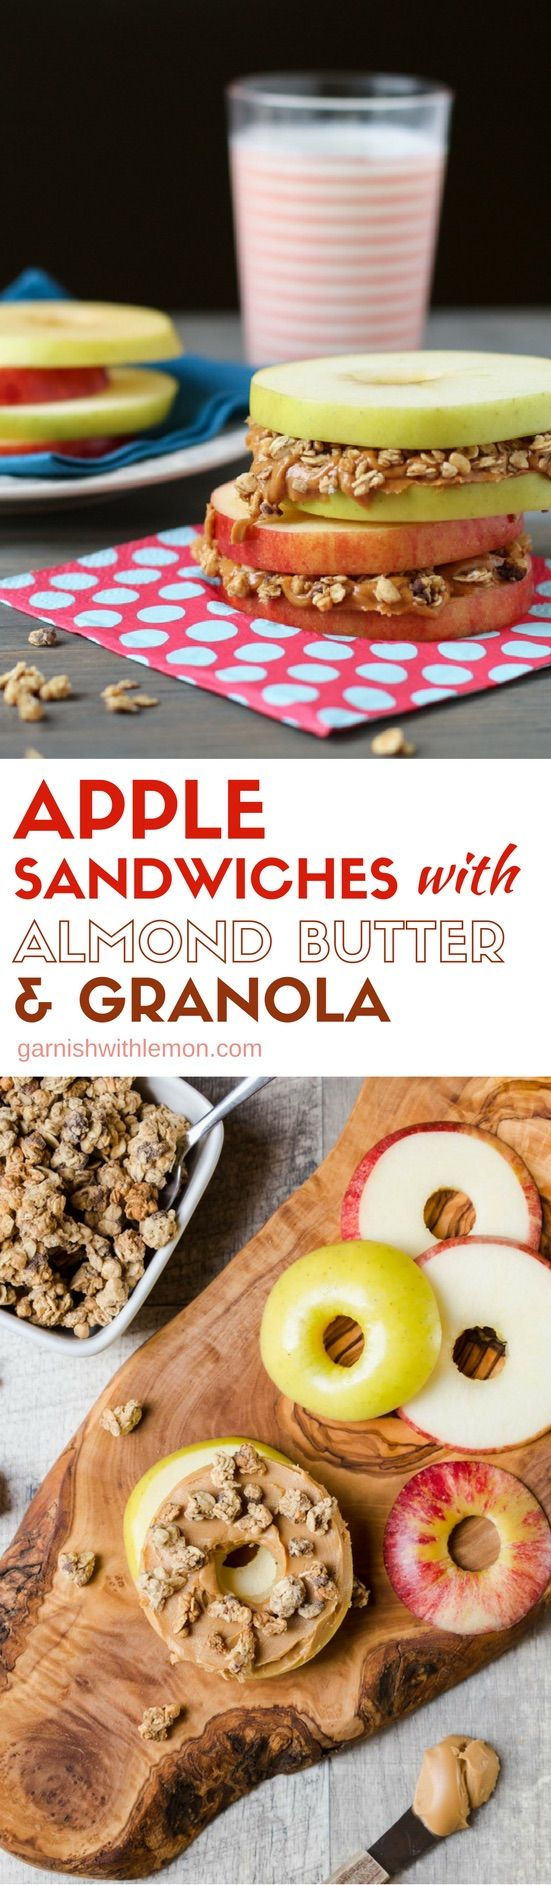 410 best after school snack recipes images on pinterest banana snacking made simple these protein packed apple sandwiches with almond butter weight watchers apple recipes forumfinder Choice Image